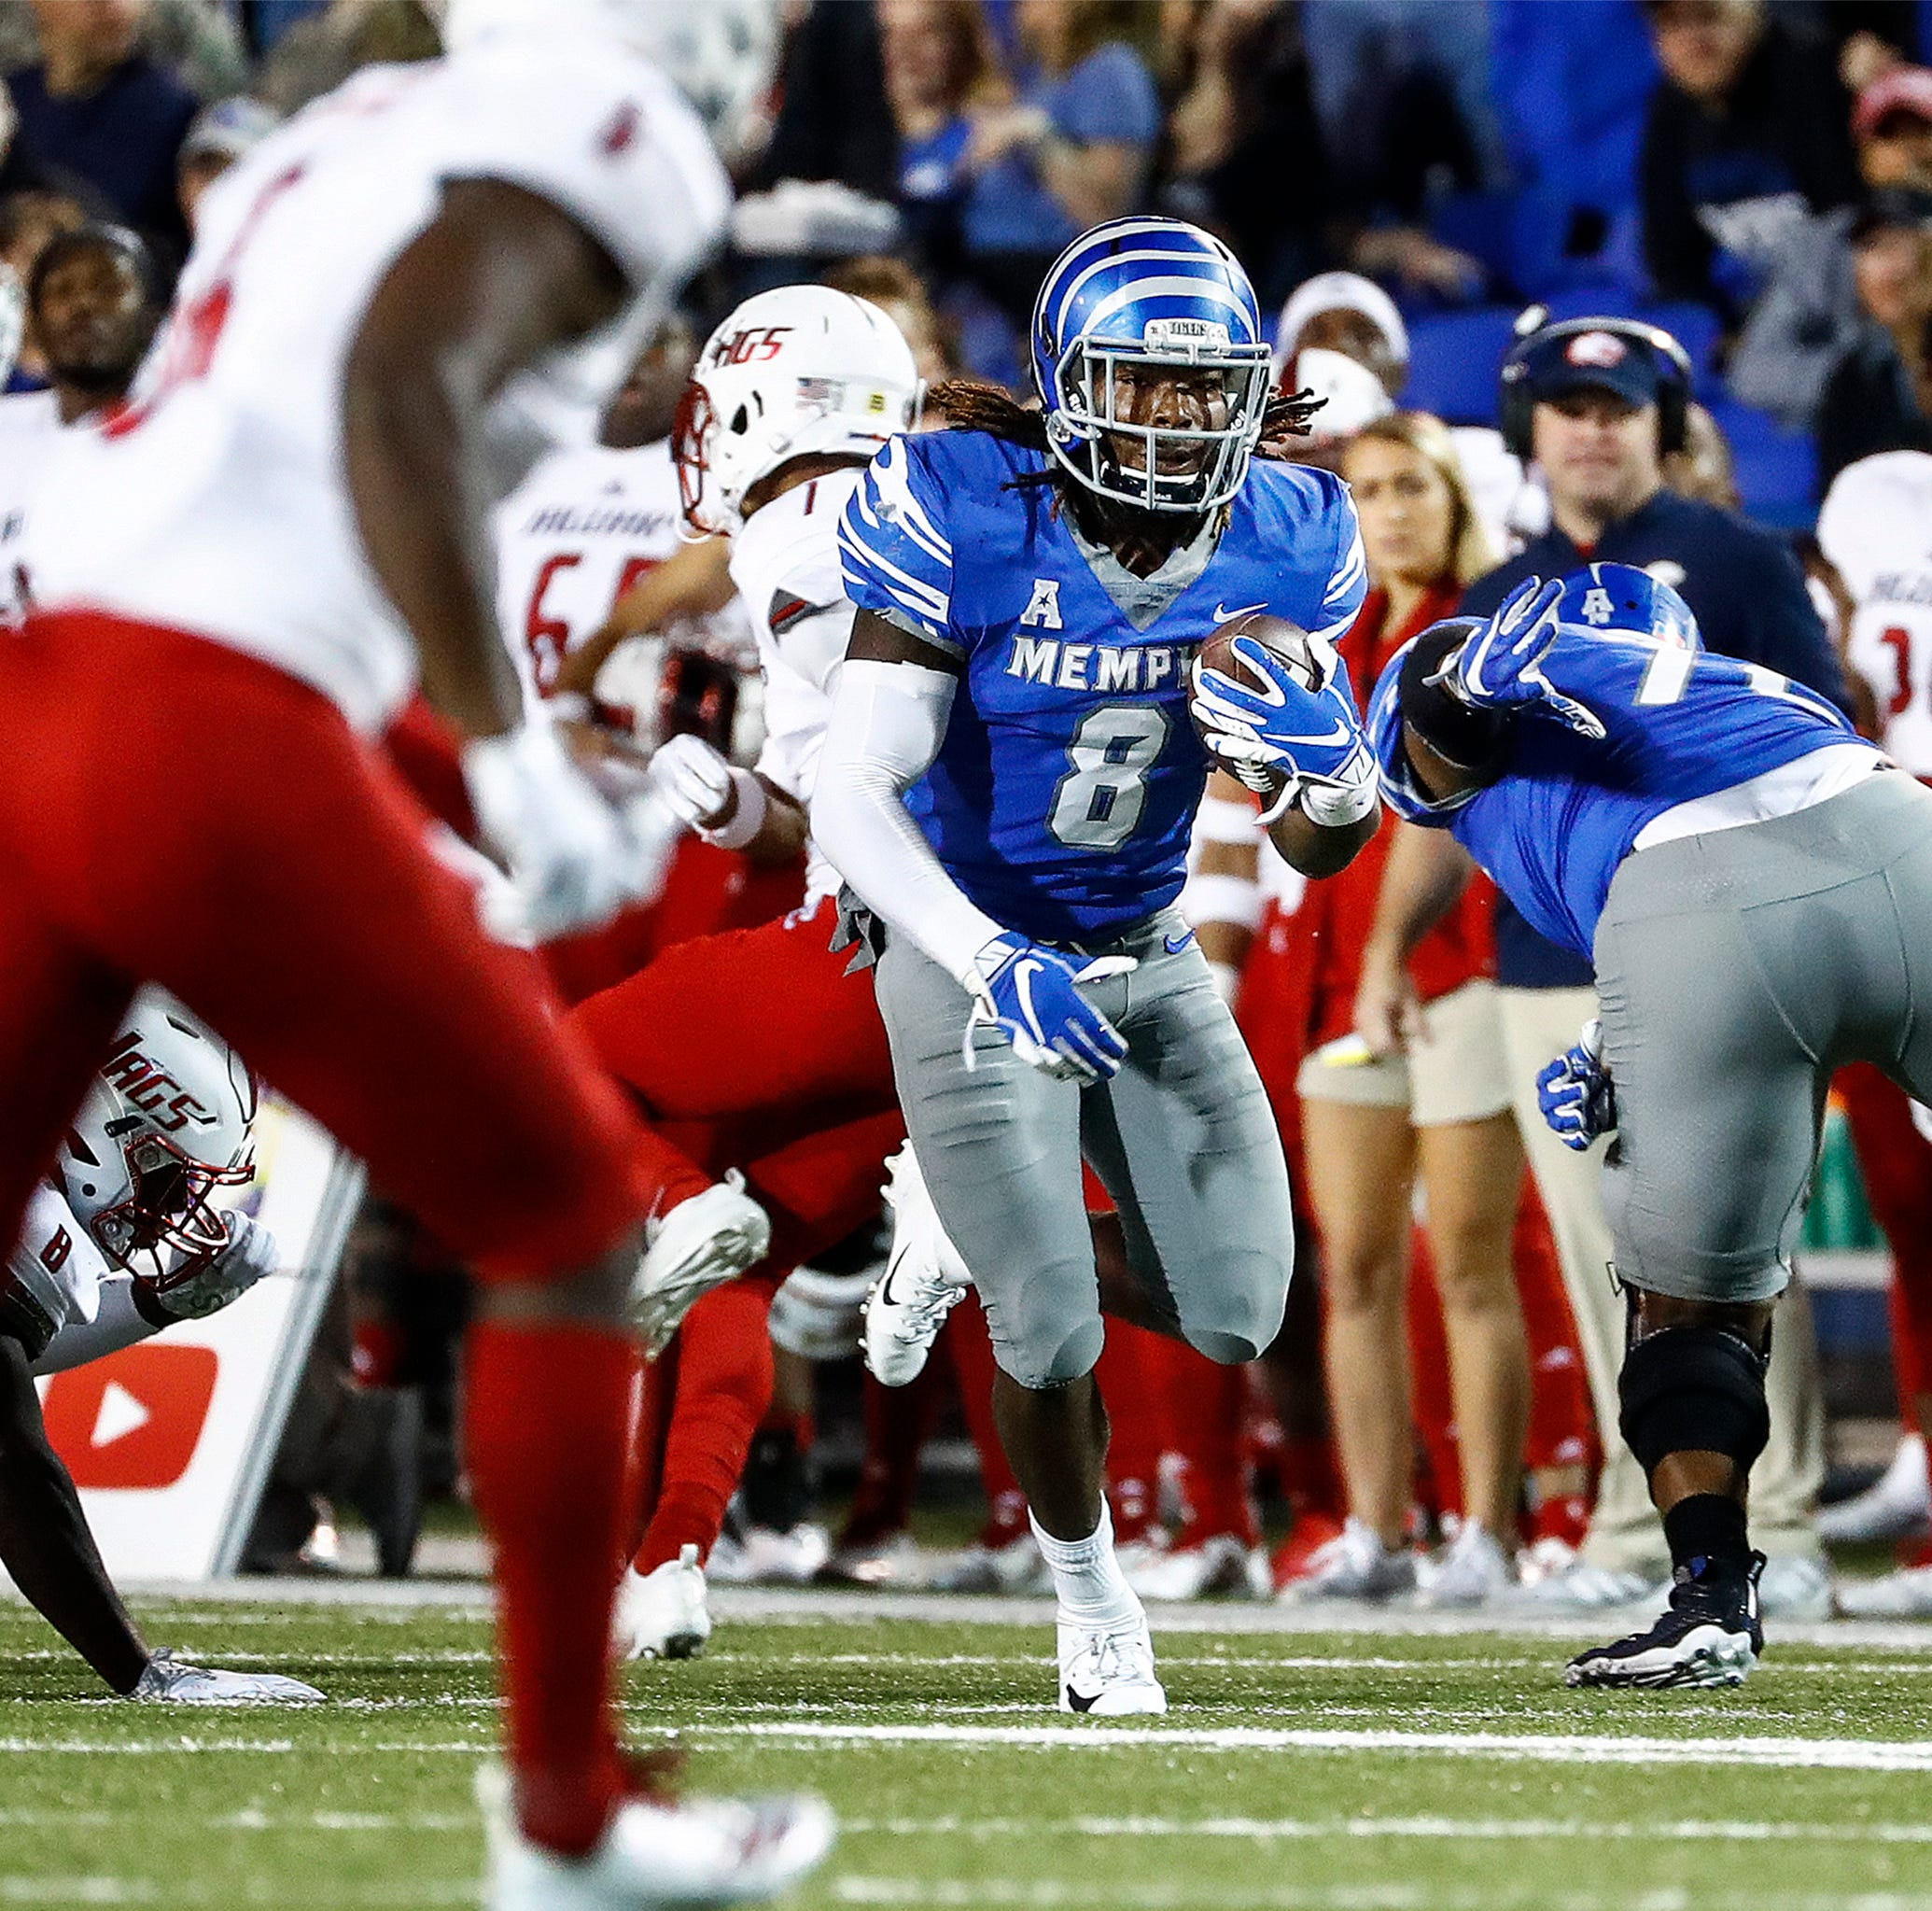 Memphis football career over for Darrell Henderson, who will skip Birmingham Bowl